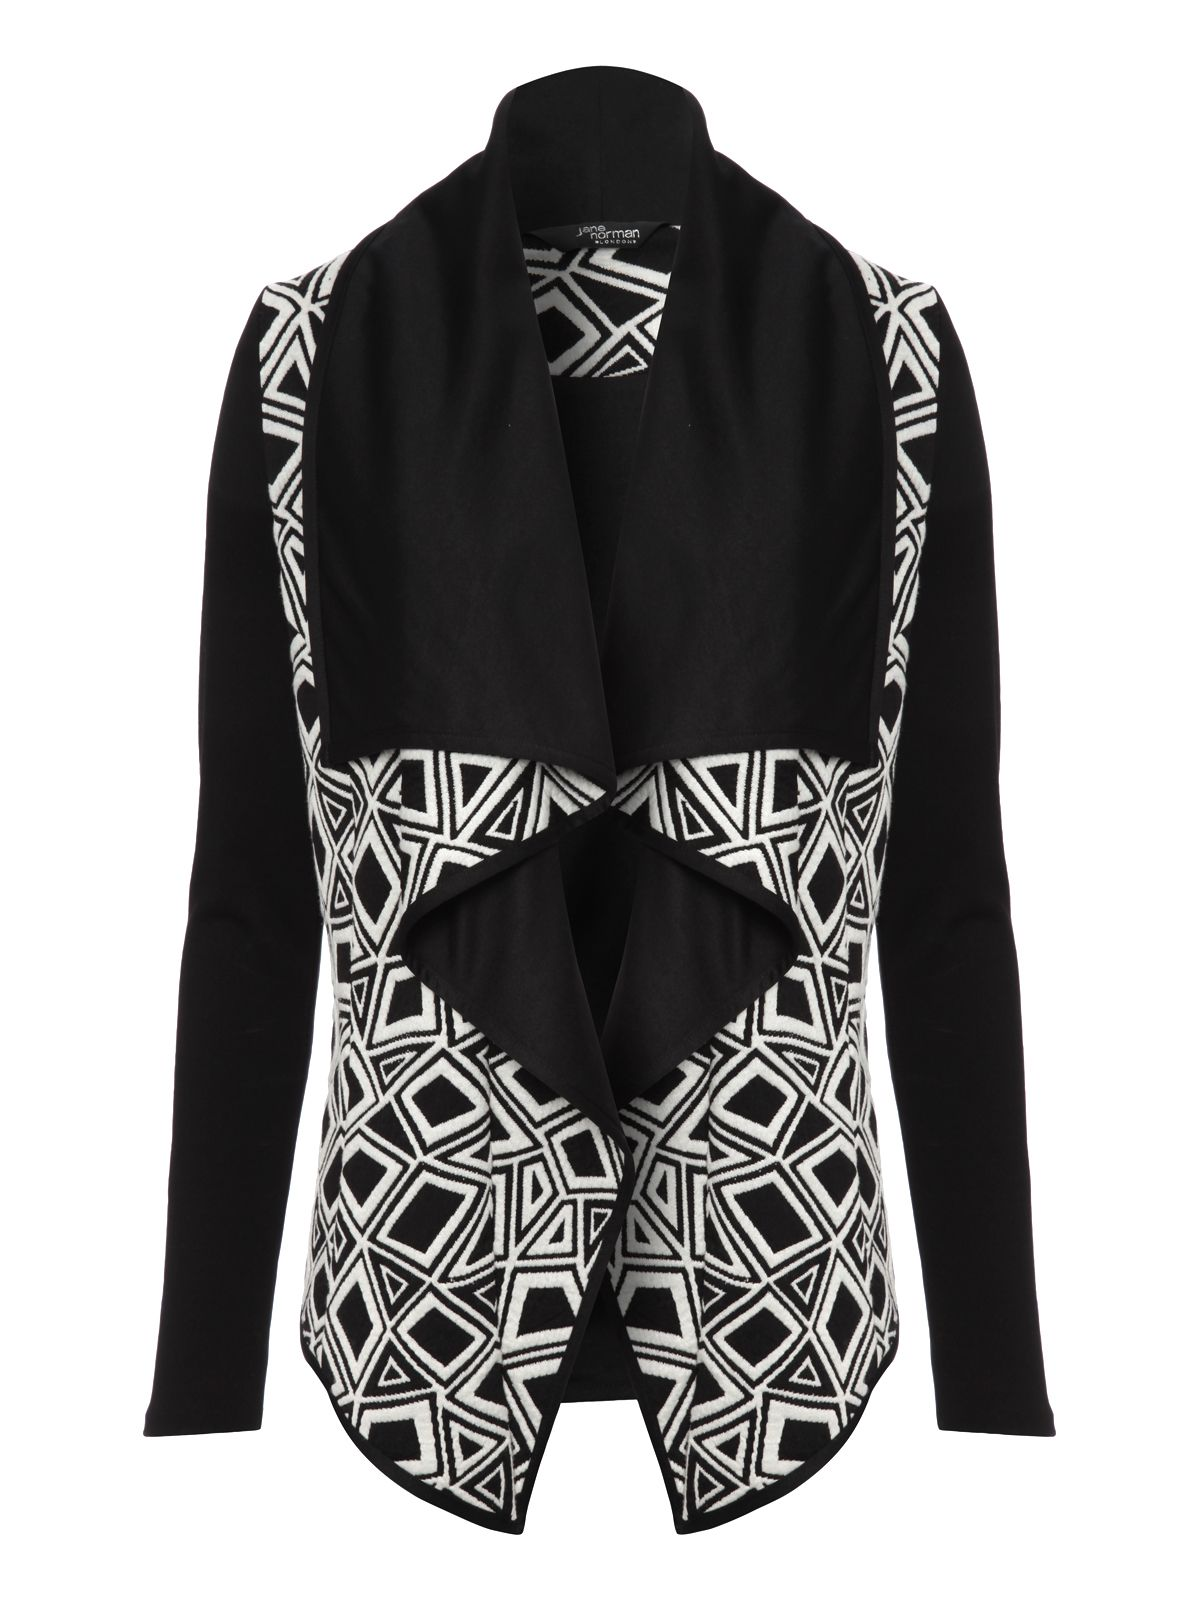 Jacquard monochrome waterfall jacket